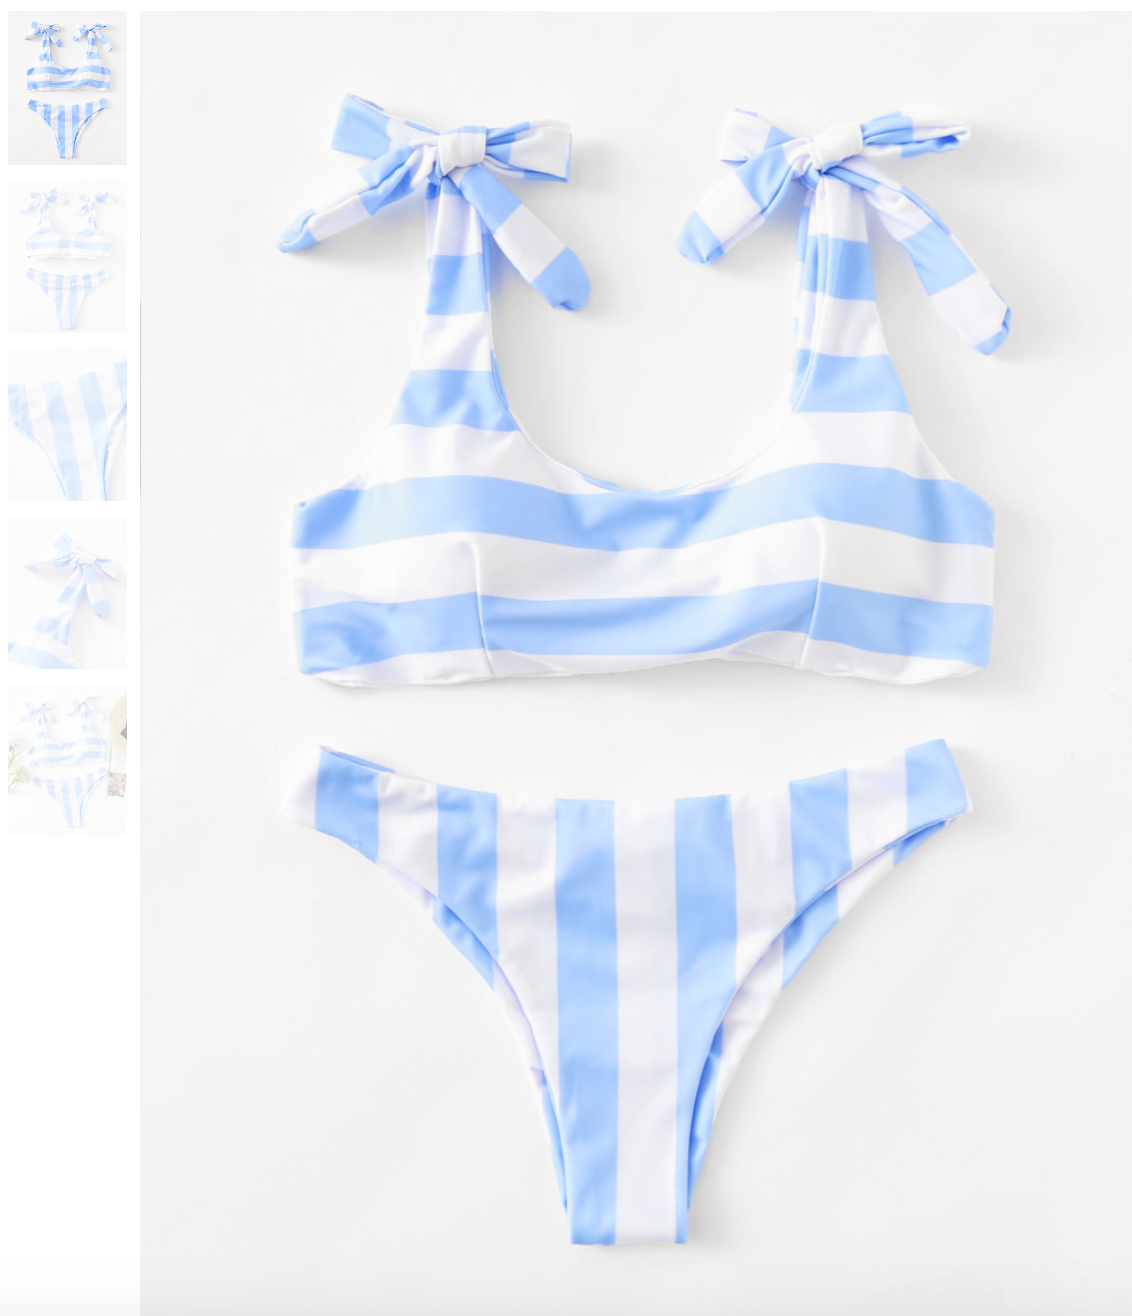 5656b66dff This one is totes adorbs if I do say so myself. I love stripes and I love  this pale blue color. It just looks so clean to me, like a nicely decorated  ...